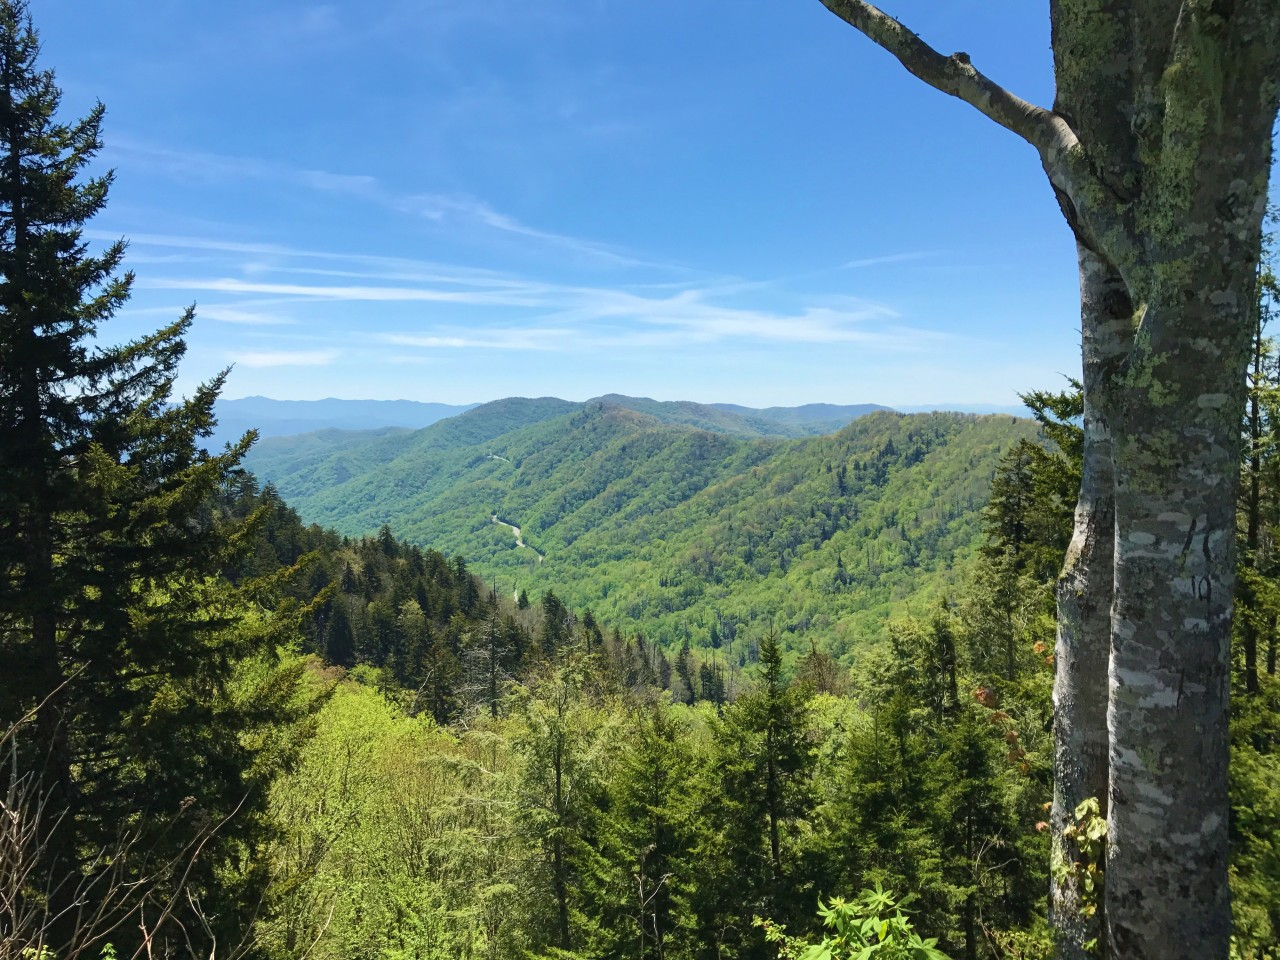 The Great Smoky Mountains – Clingmans Dome